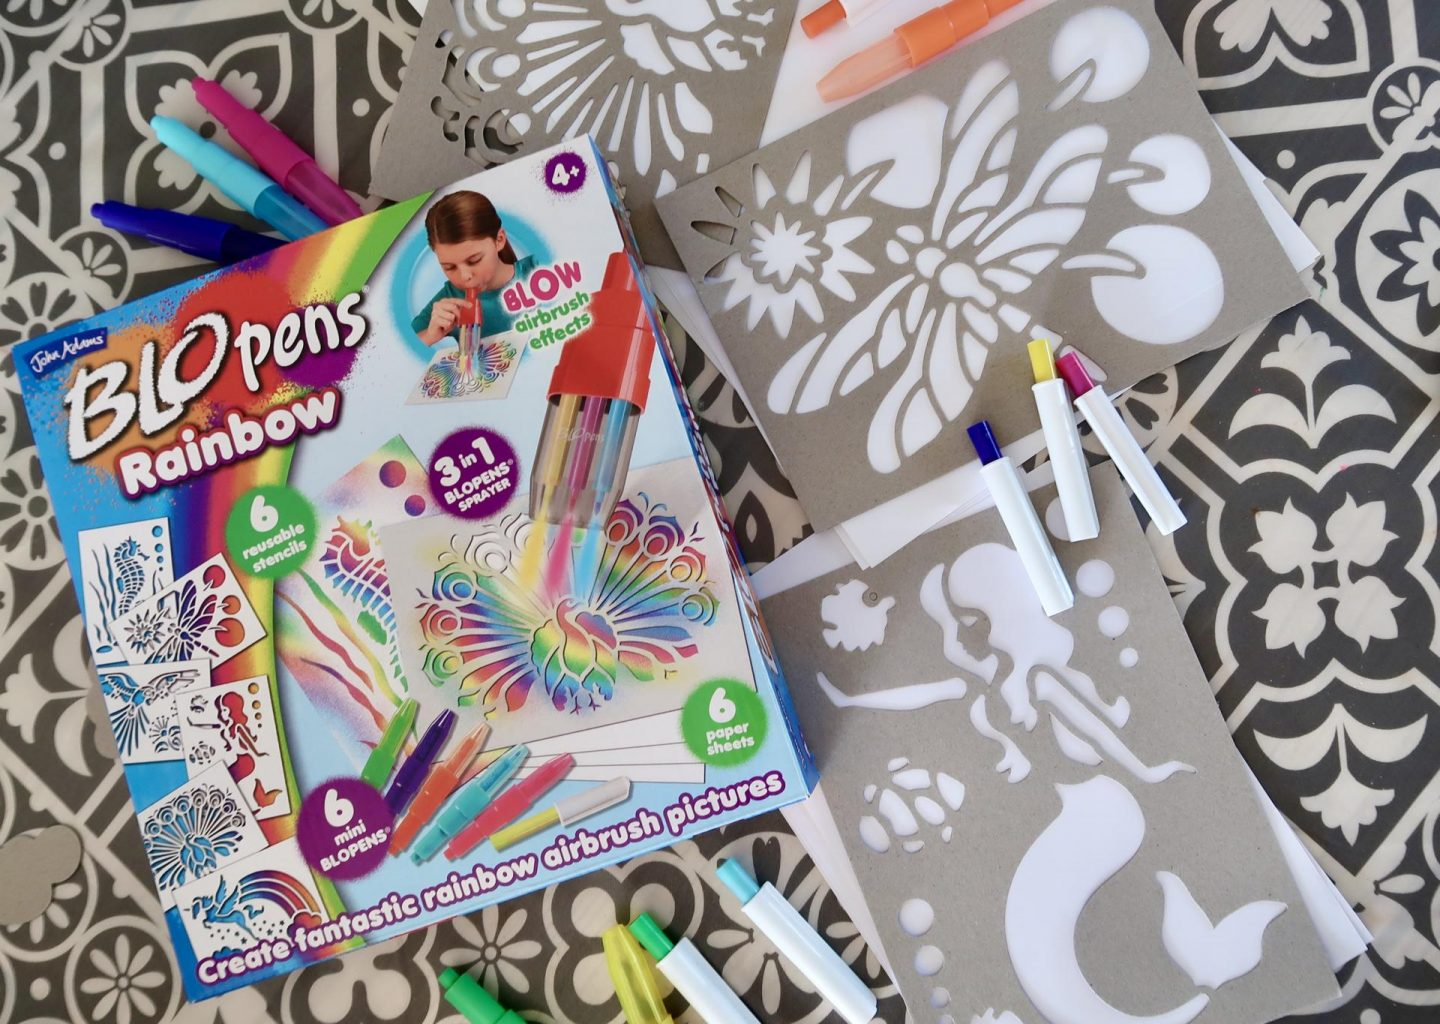 BLOPENS RAINBOW |REVIEW & GIVEAWAY|